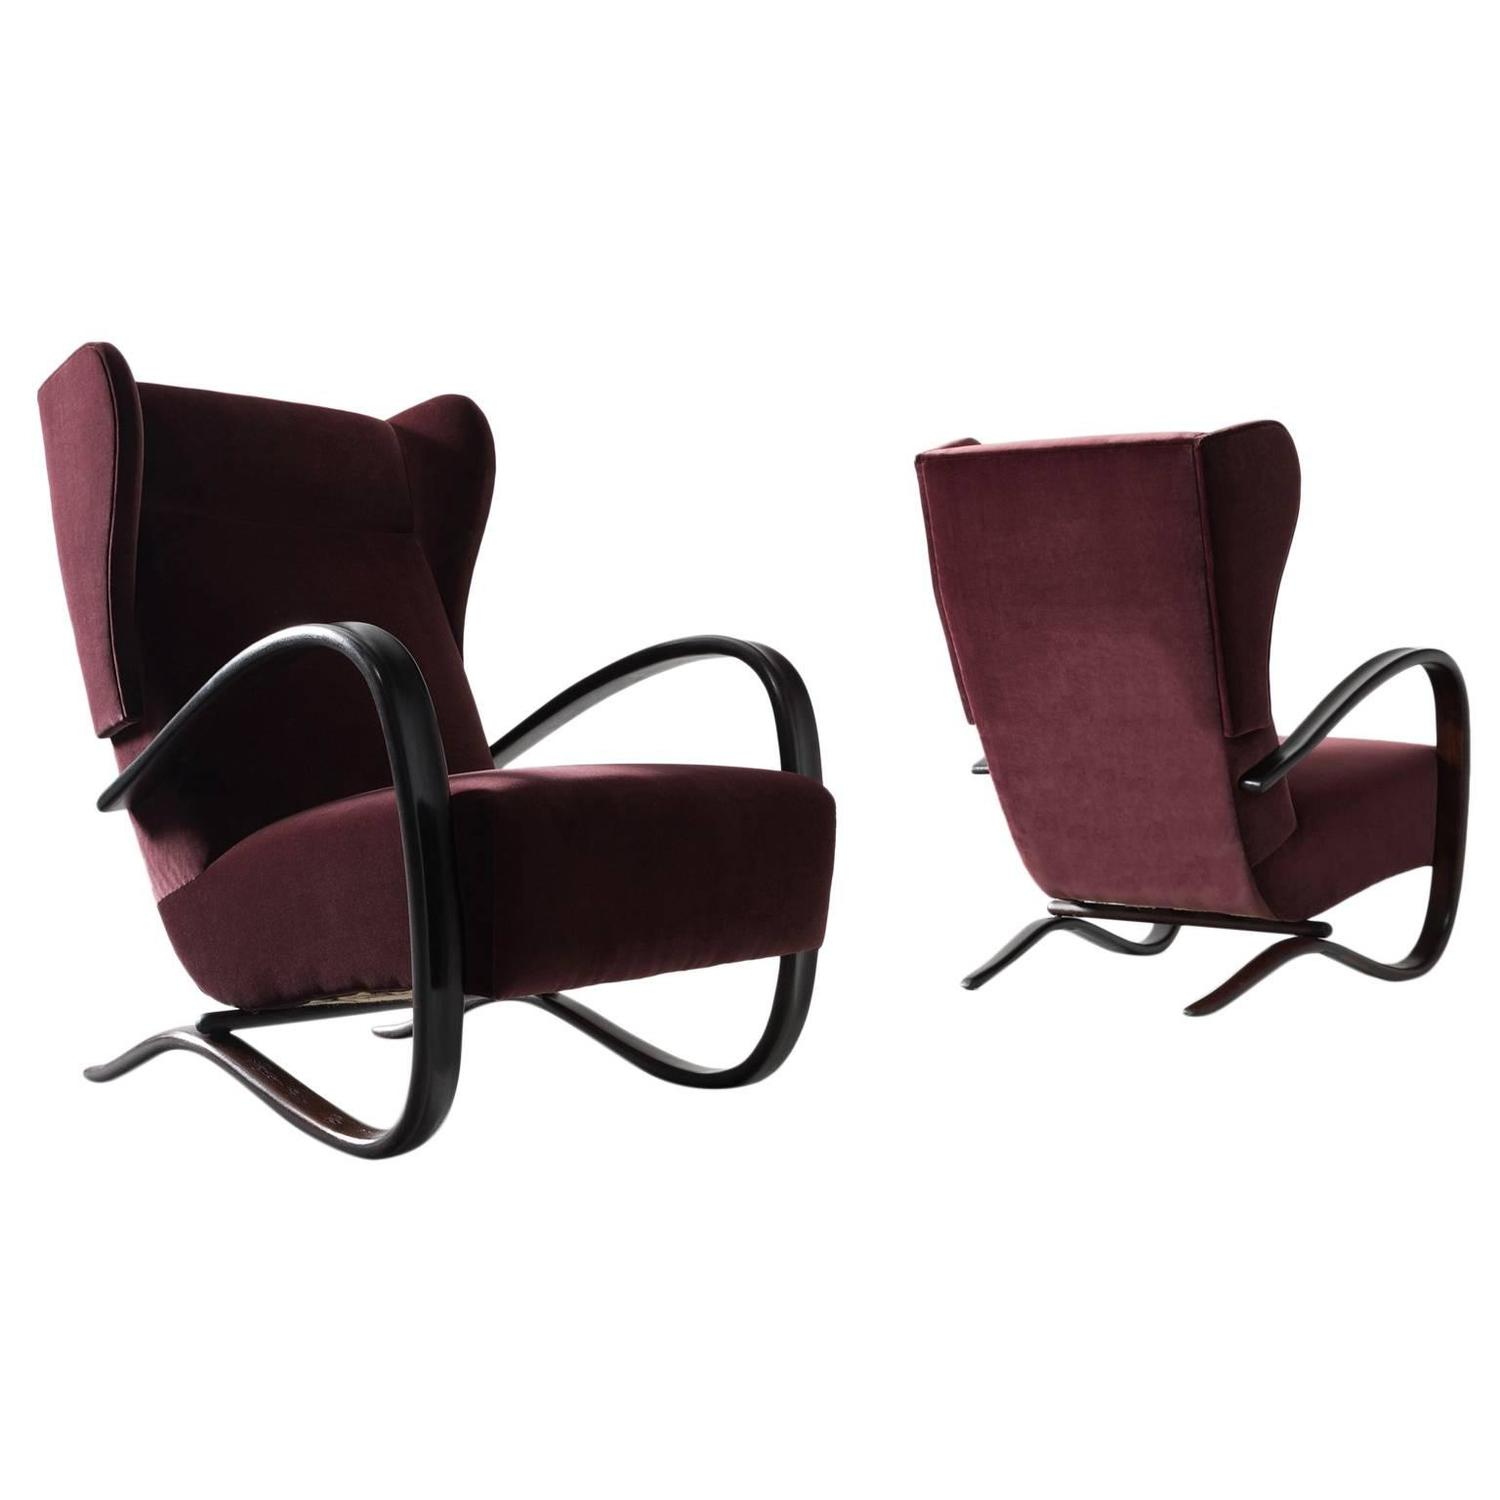 Jindrich halabala pair of reupholstered rare wingback for Reupholstered chairs for sale